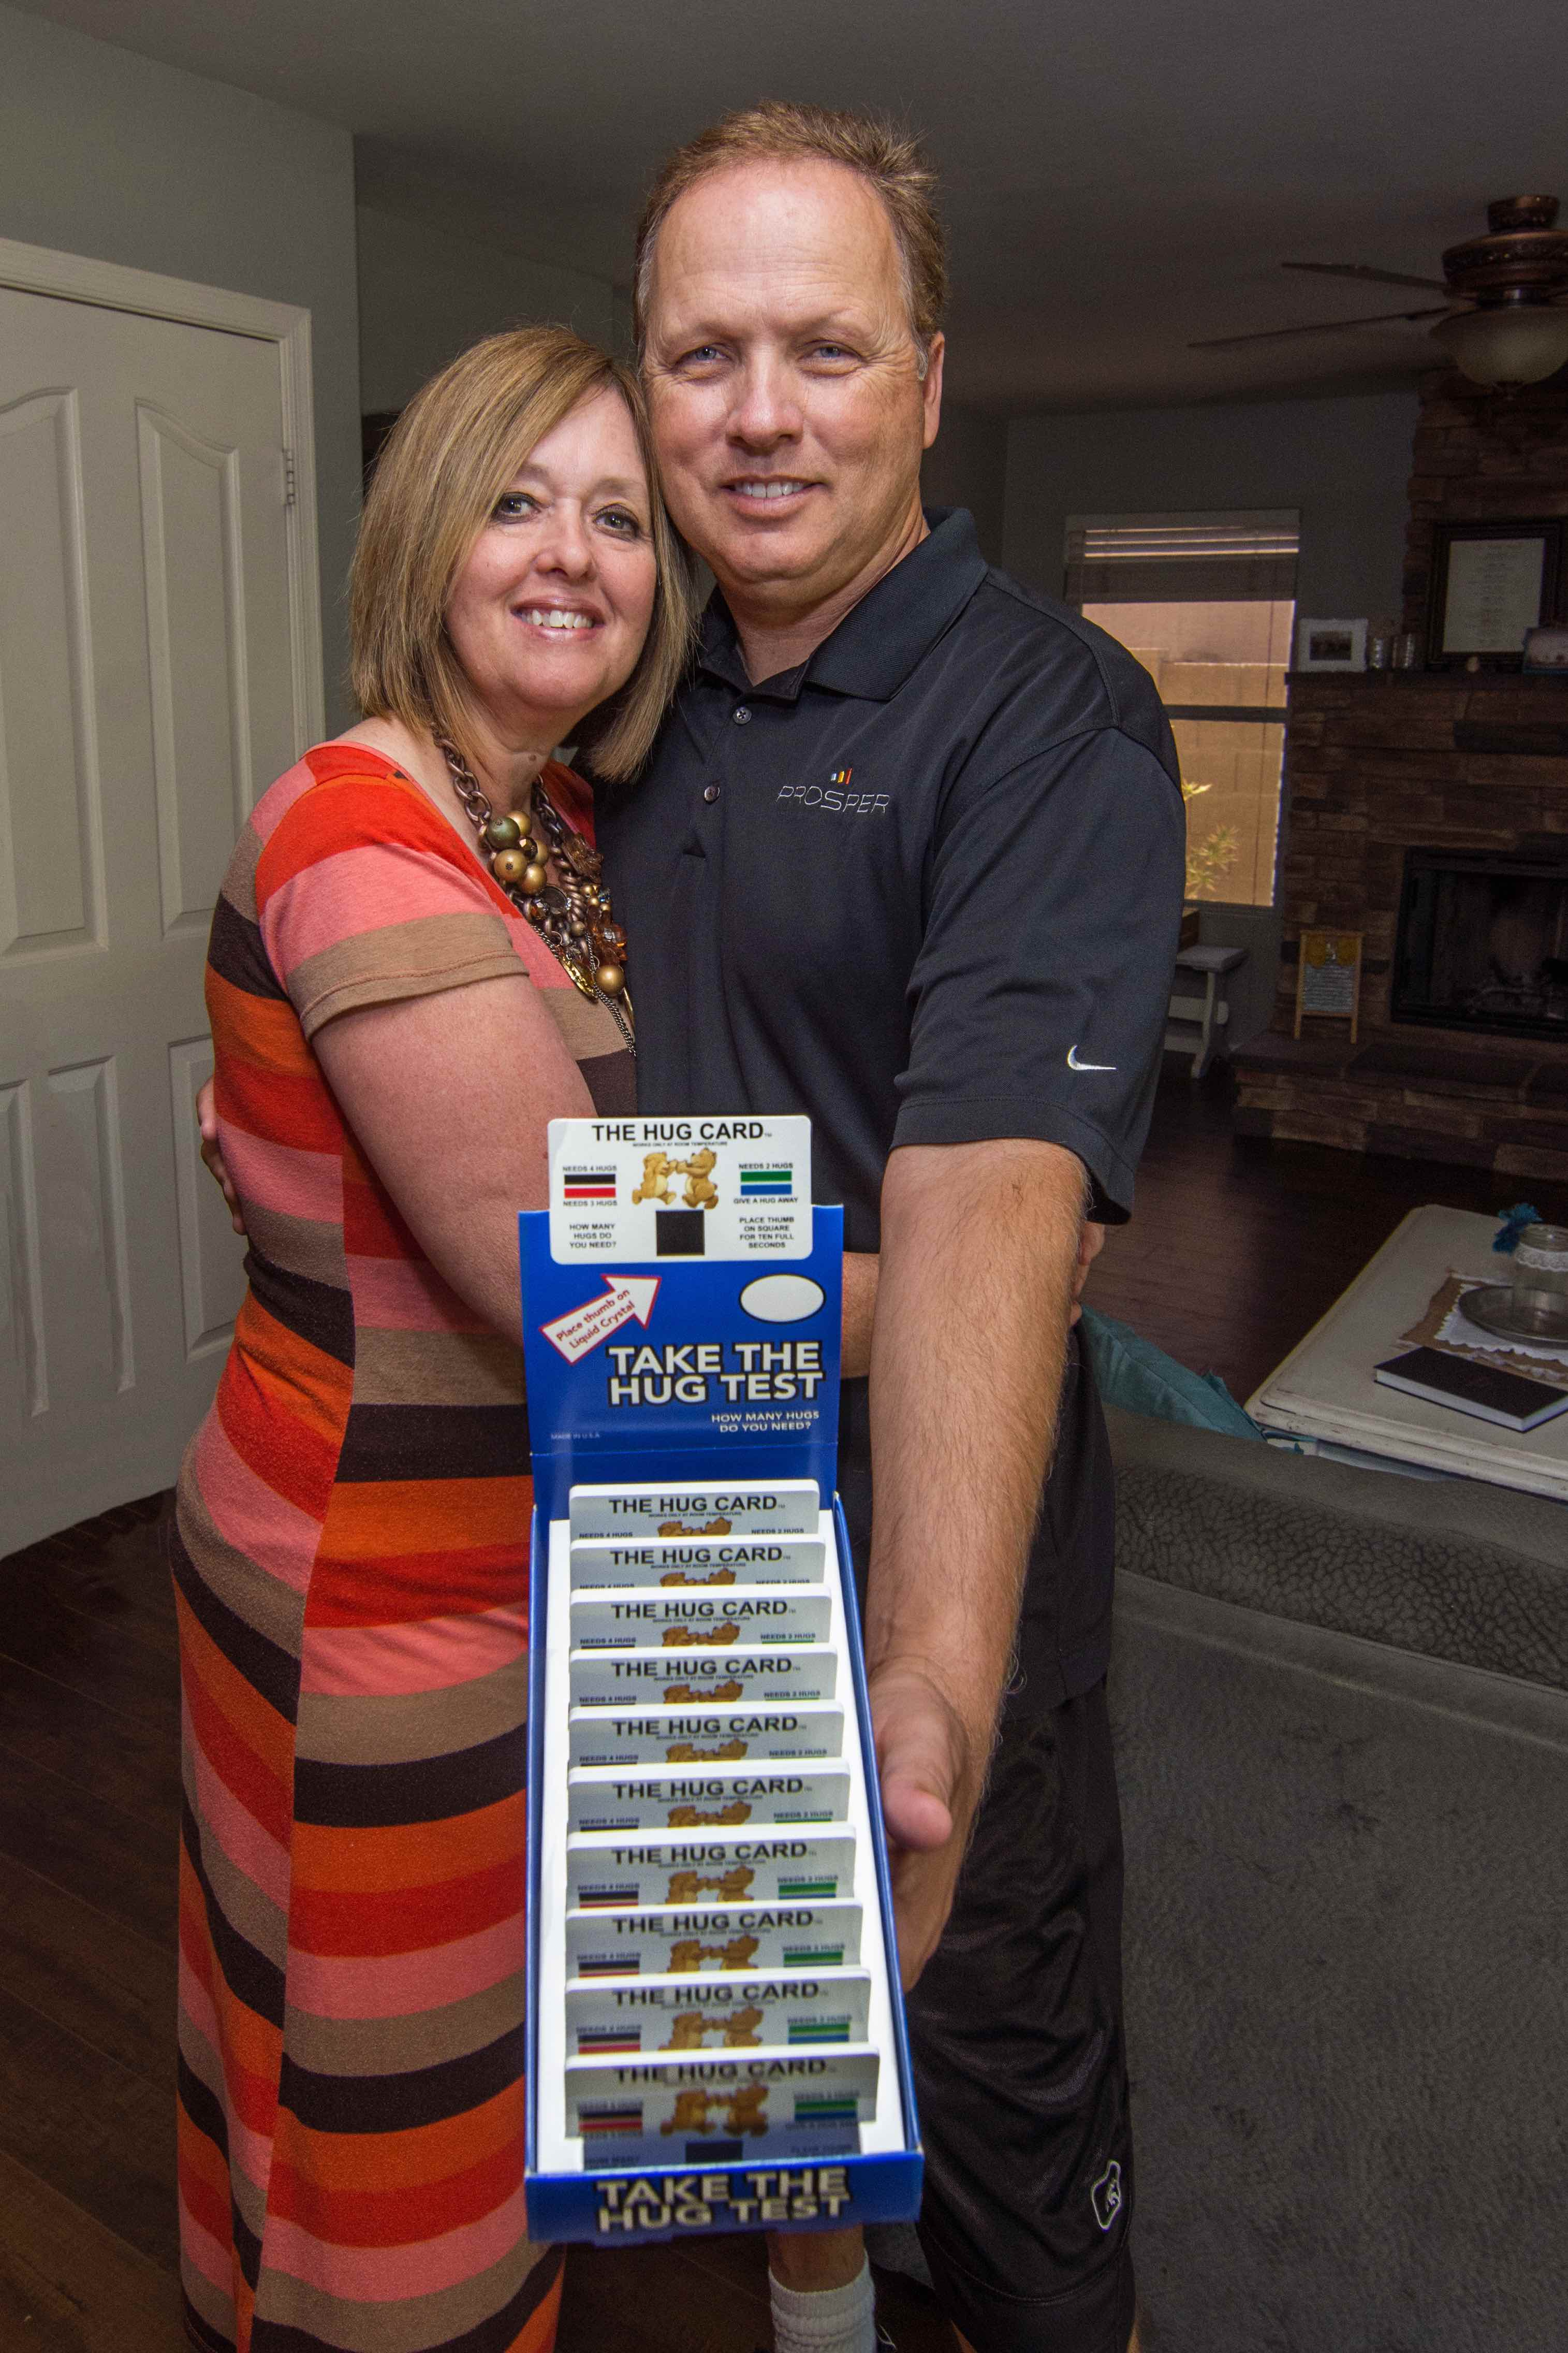 Phelecia And Brent Hatch, Of Gilbert, Say The Hug Card, By Giving People Permission To Hug, Can Stem Bullying, Repair Family Relationships And Can Open The Avenues Of Communication And Connection. Photo By John Power